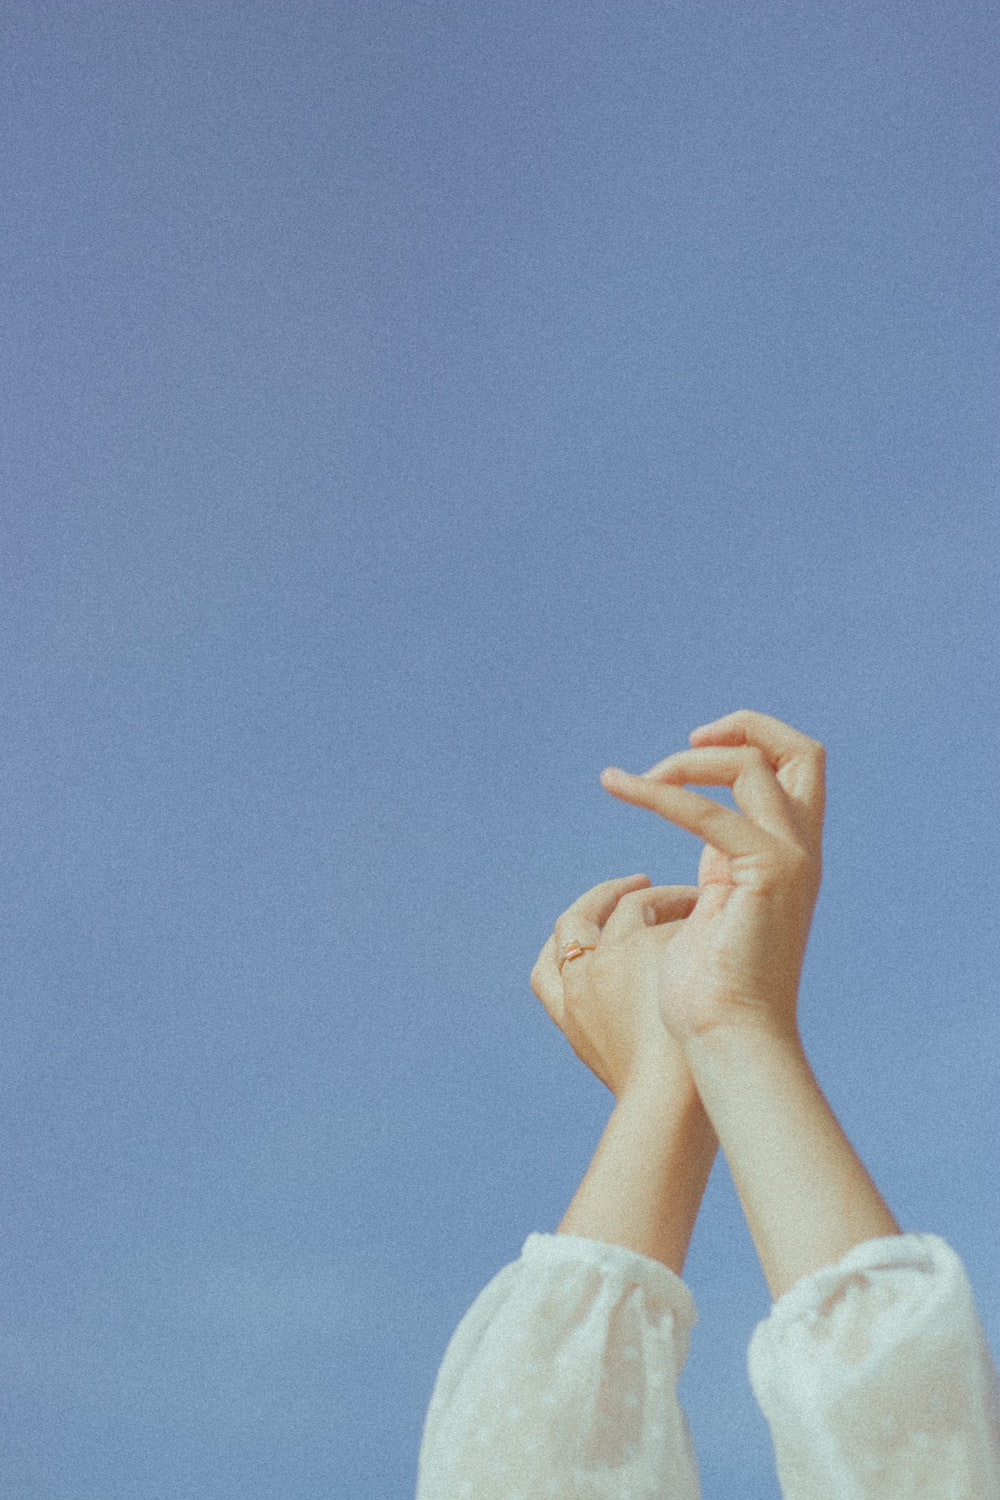 persons hand on blue sky